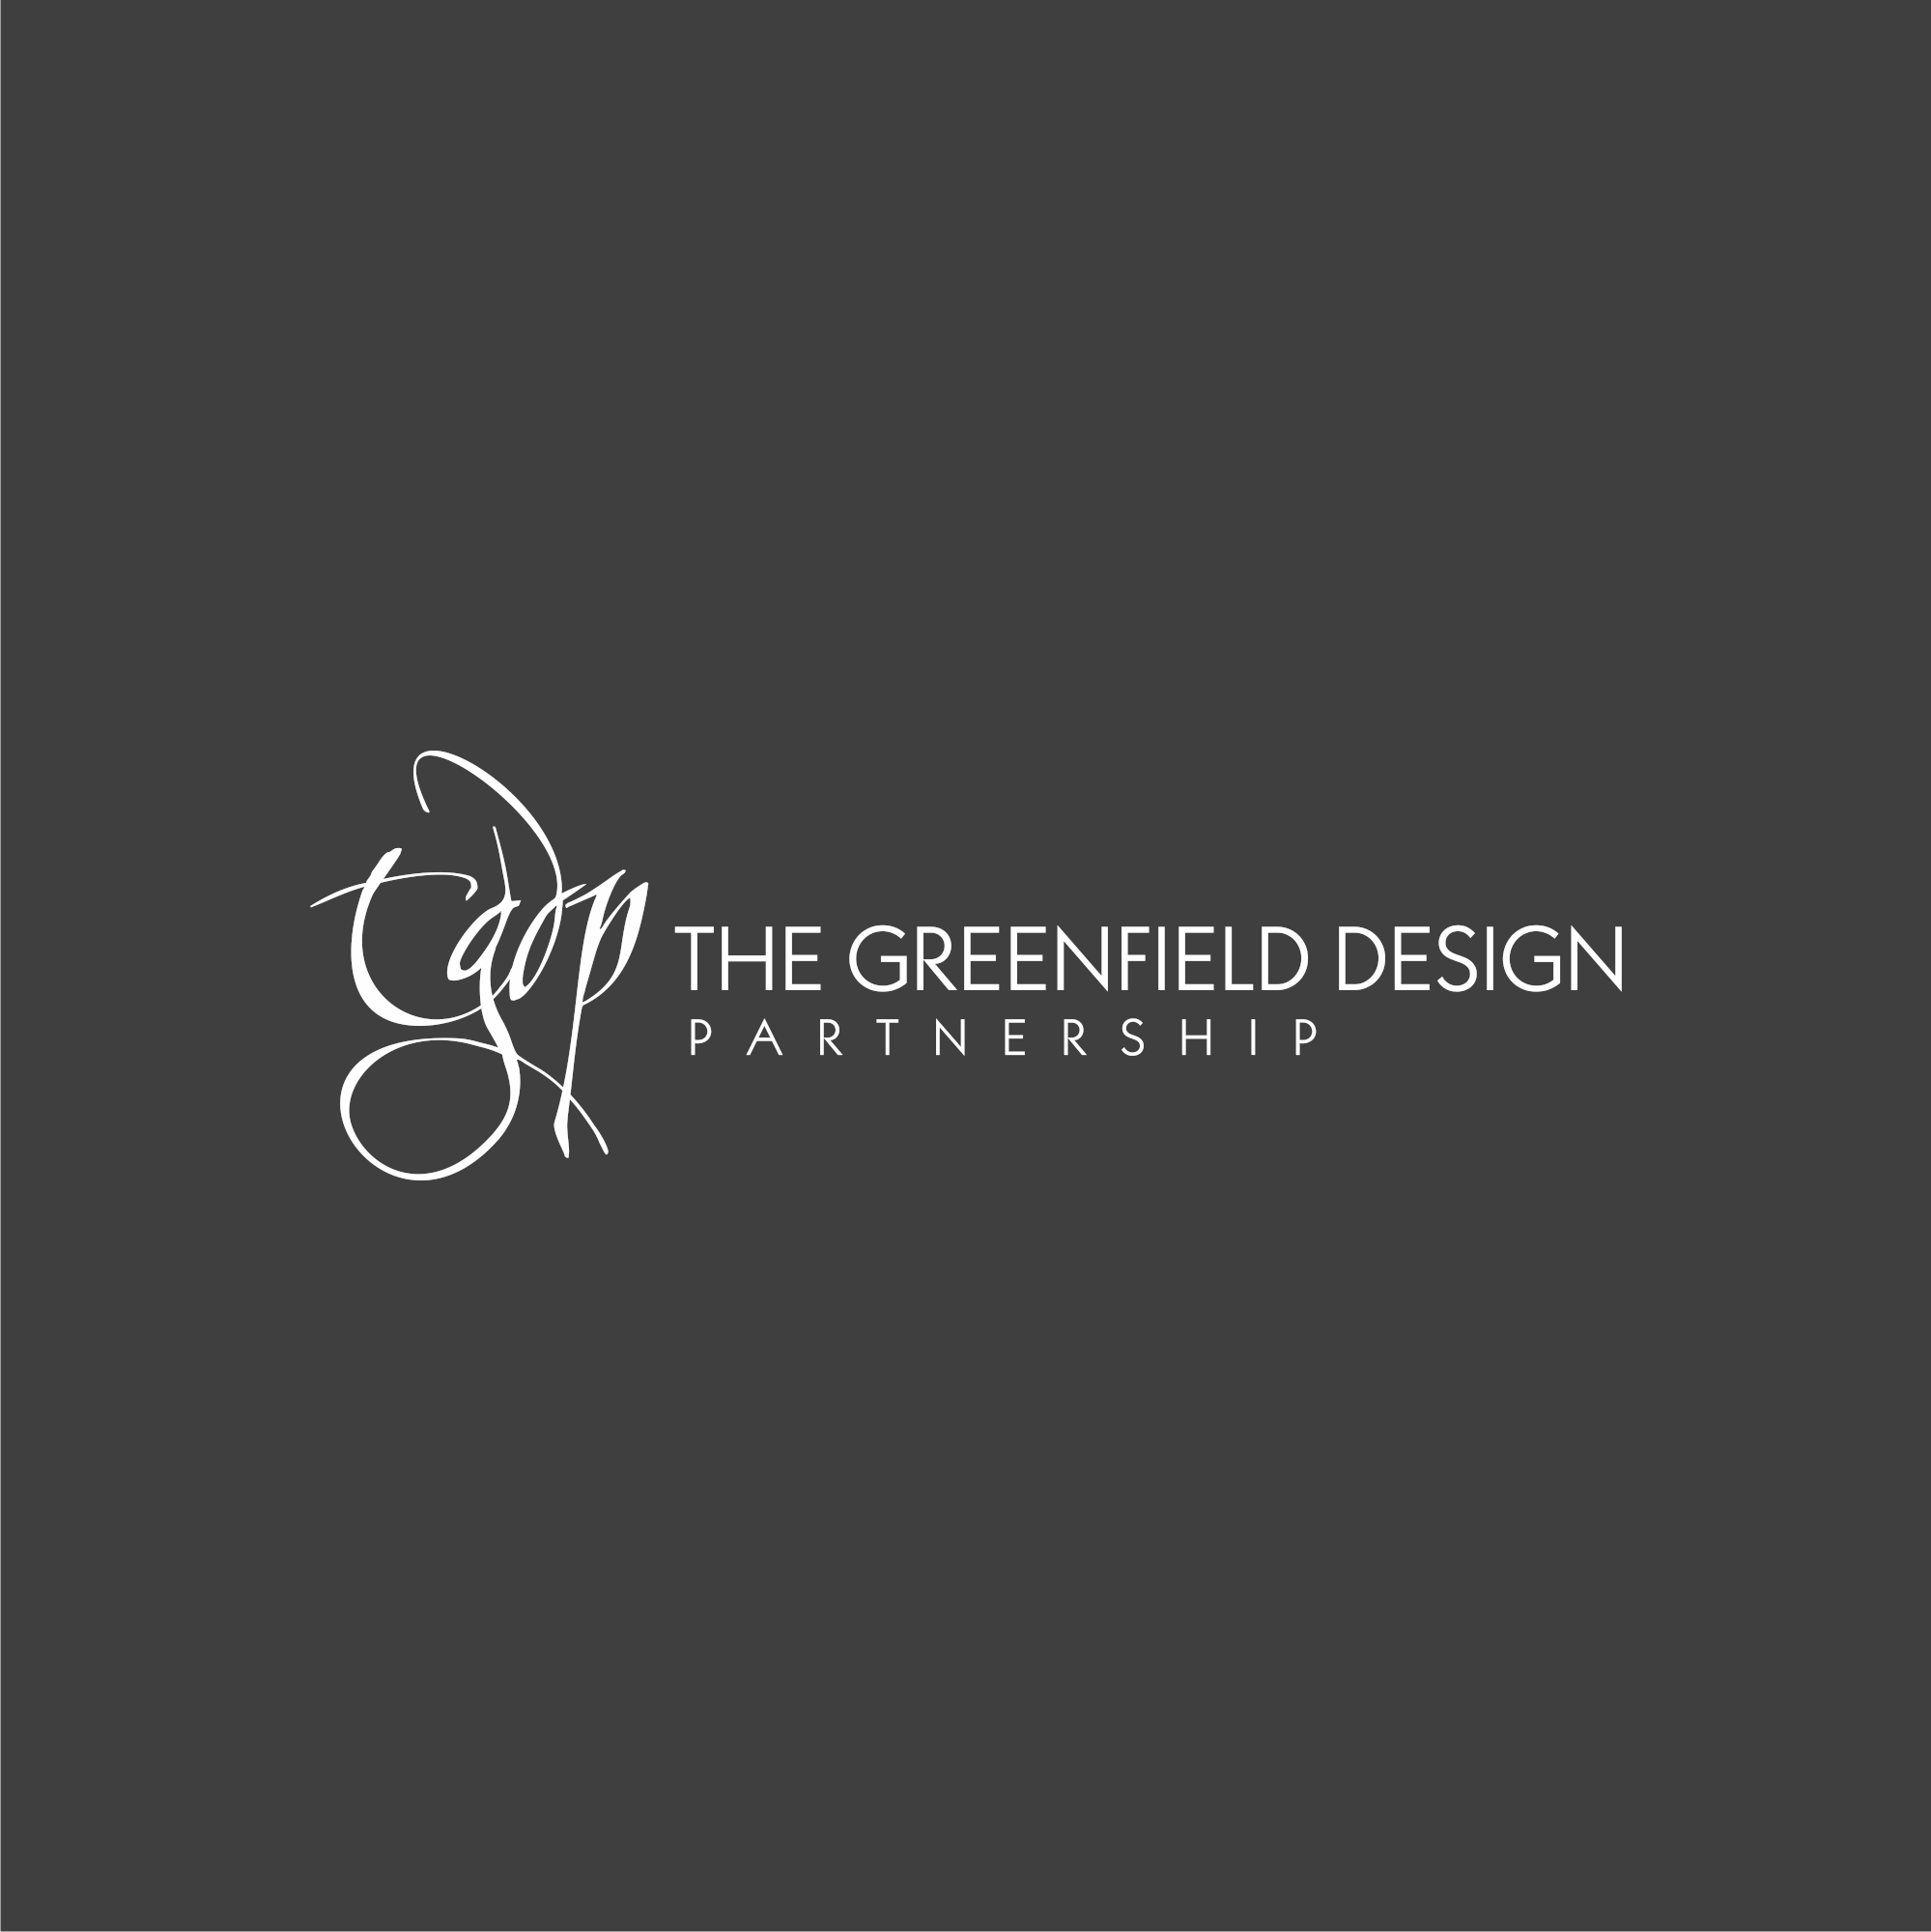 Architectural practice requires fresh branding, a clean simple logo.